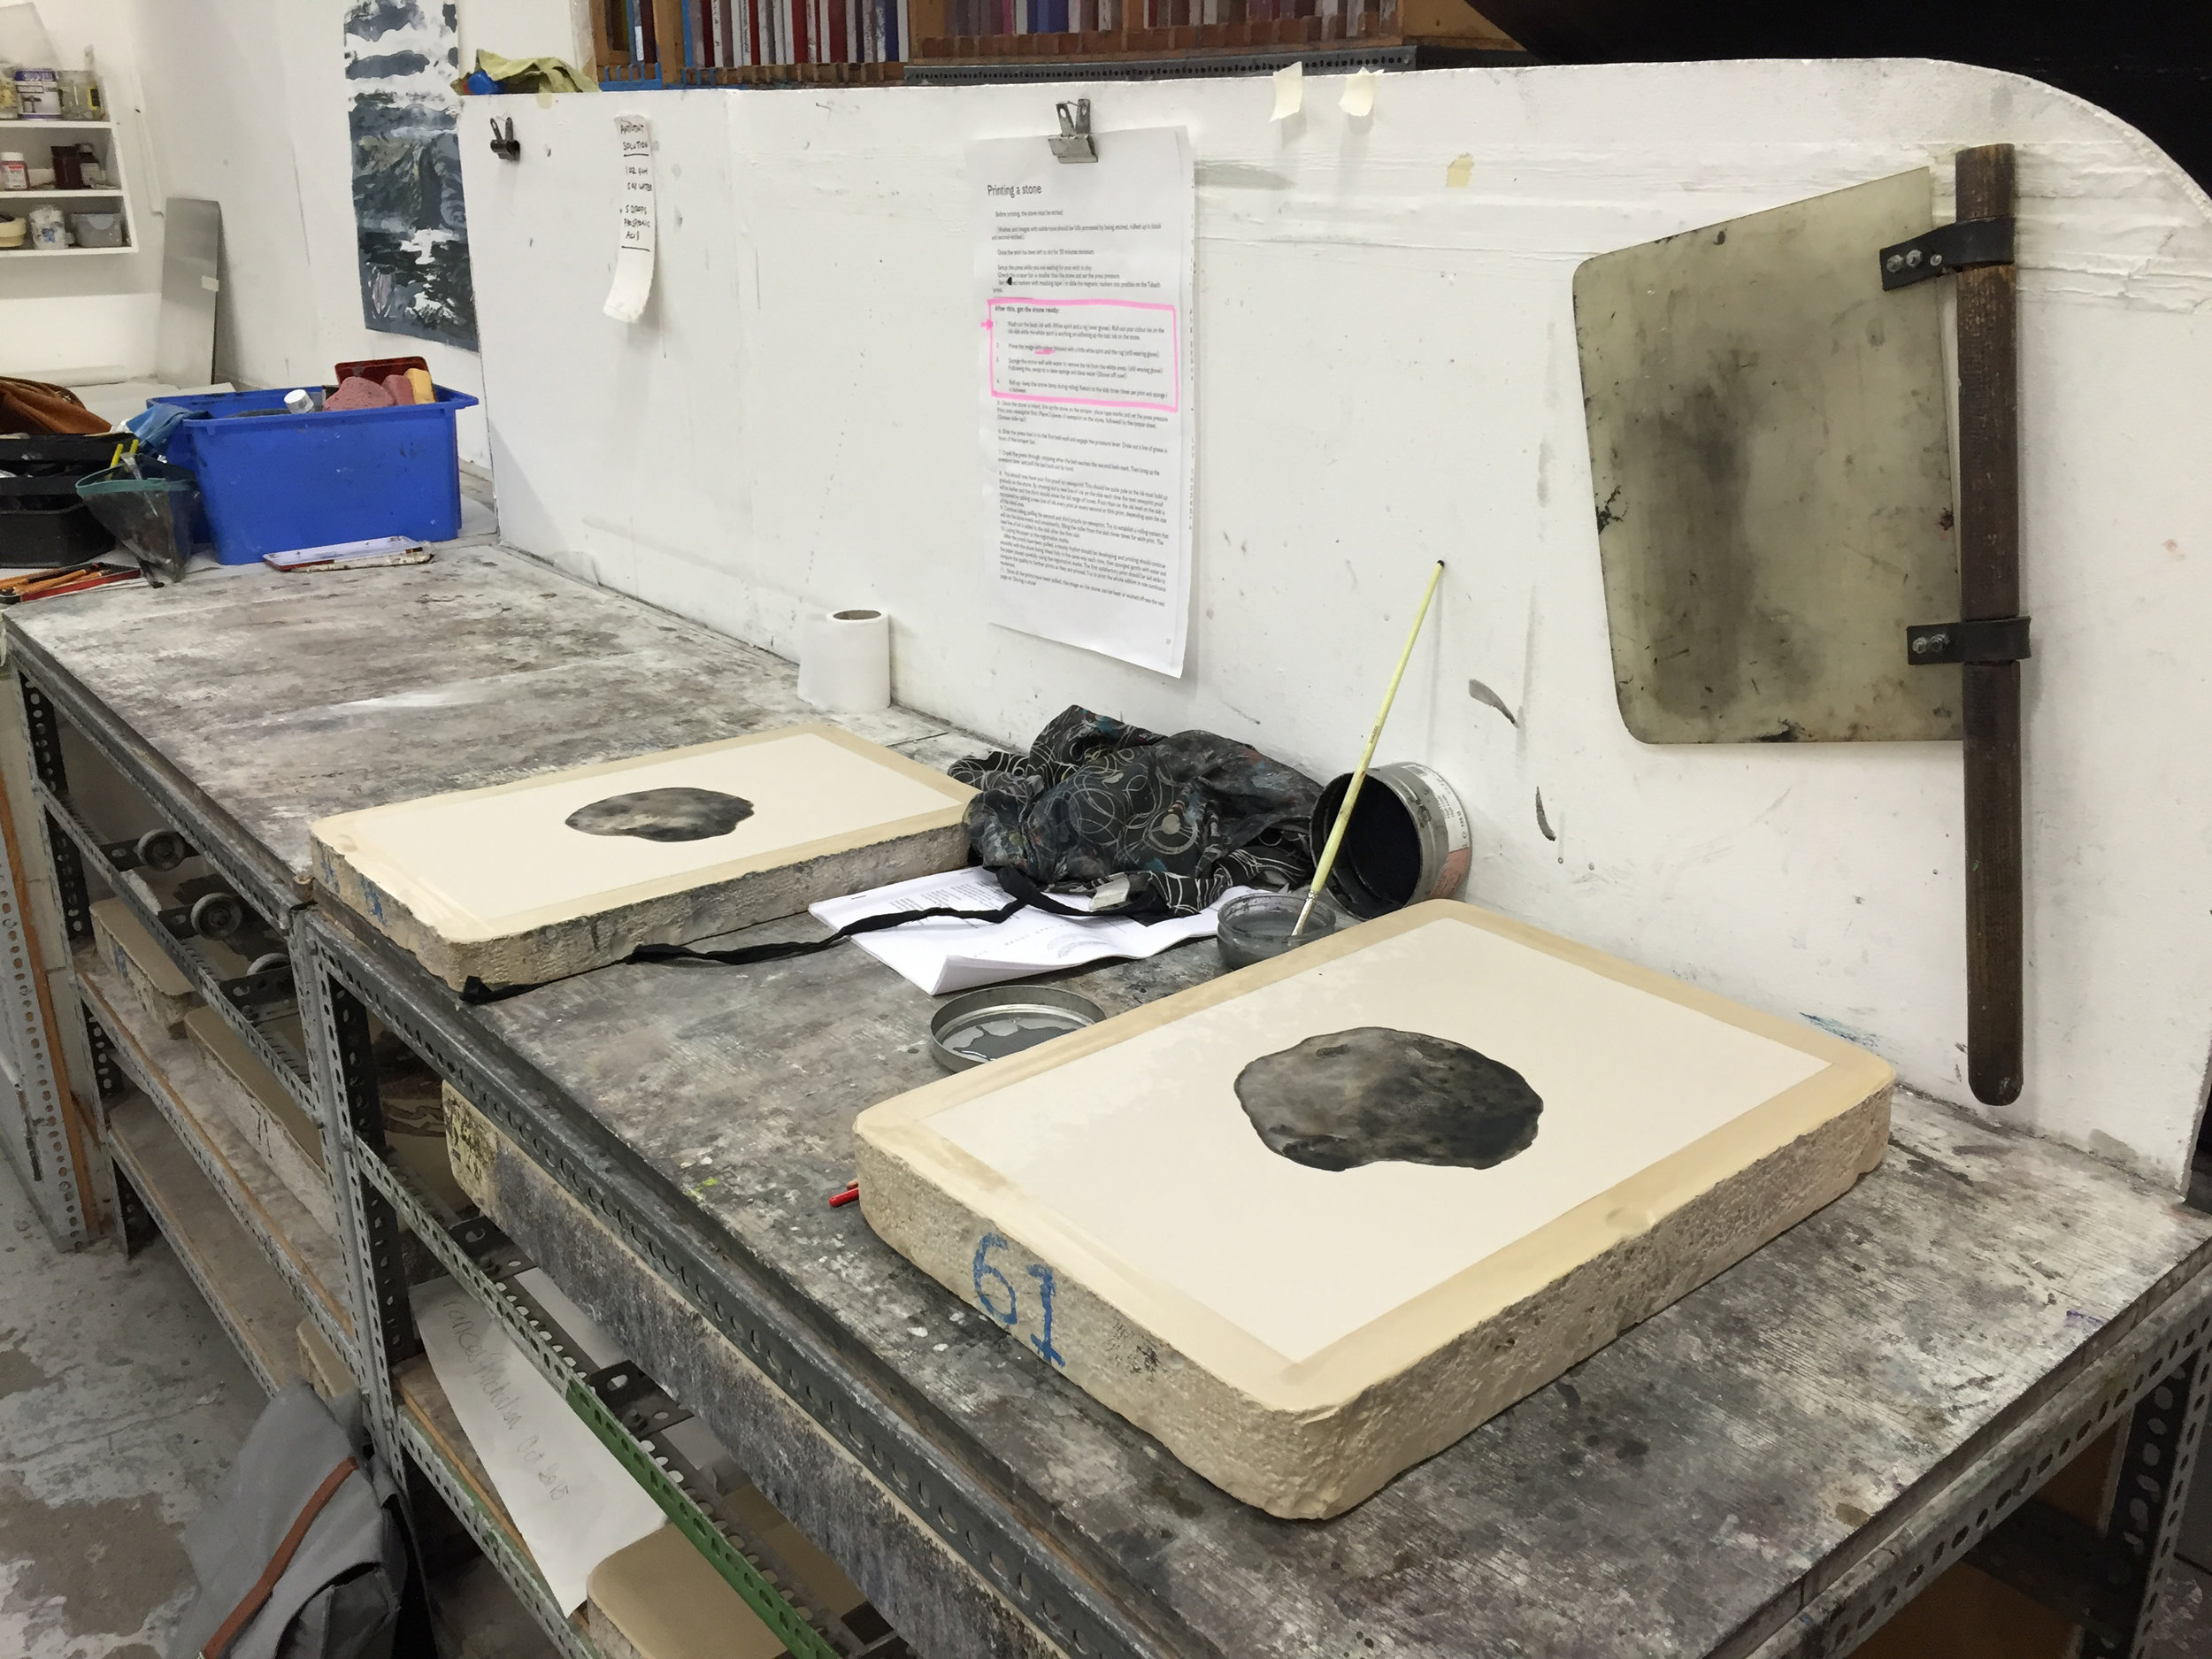 Drawing asteroids on litho stones at Edinburgh Printmakers; imagining the Manicouagan asteroid.